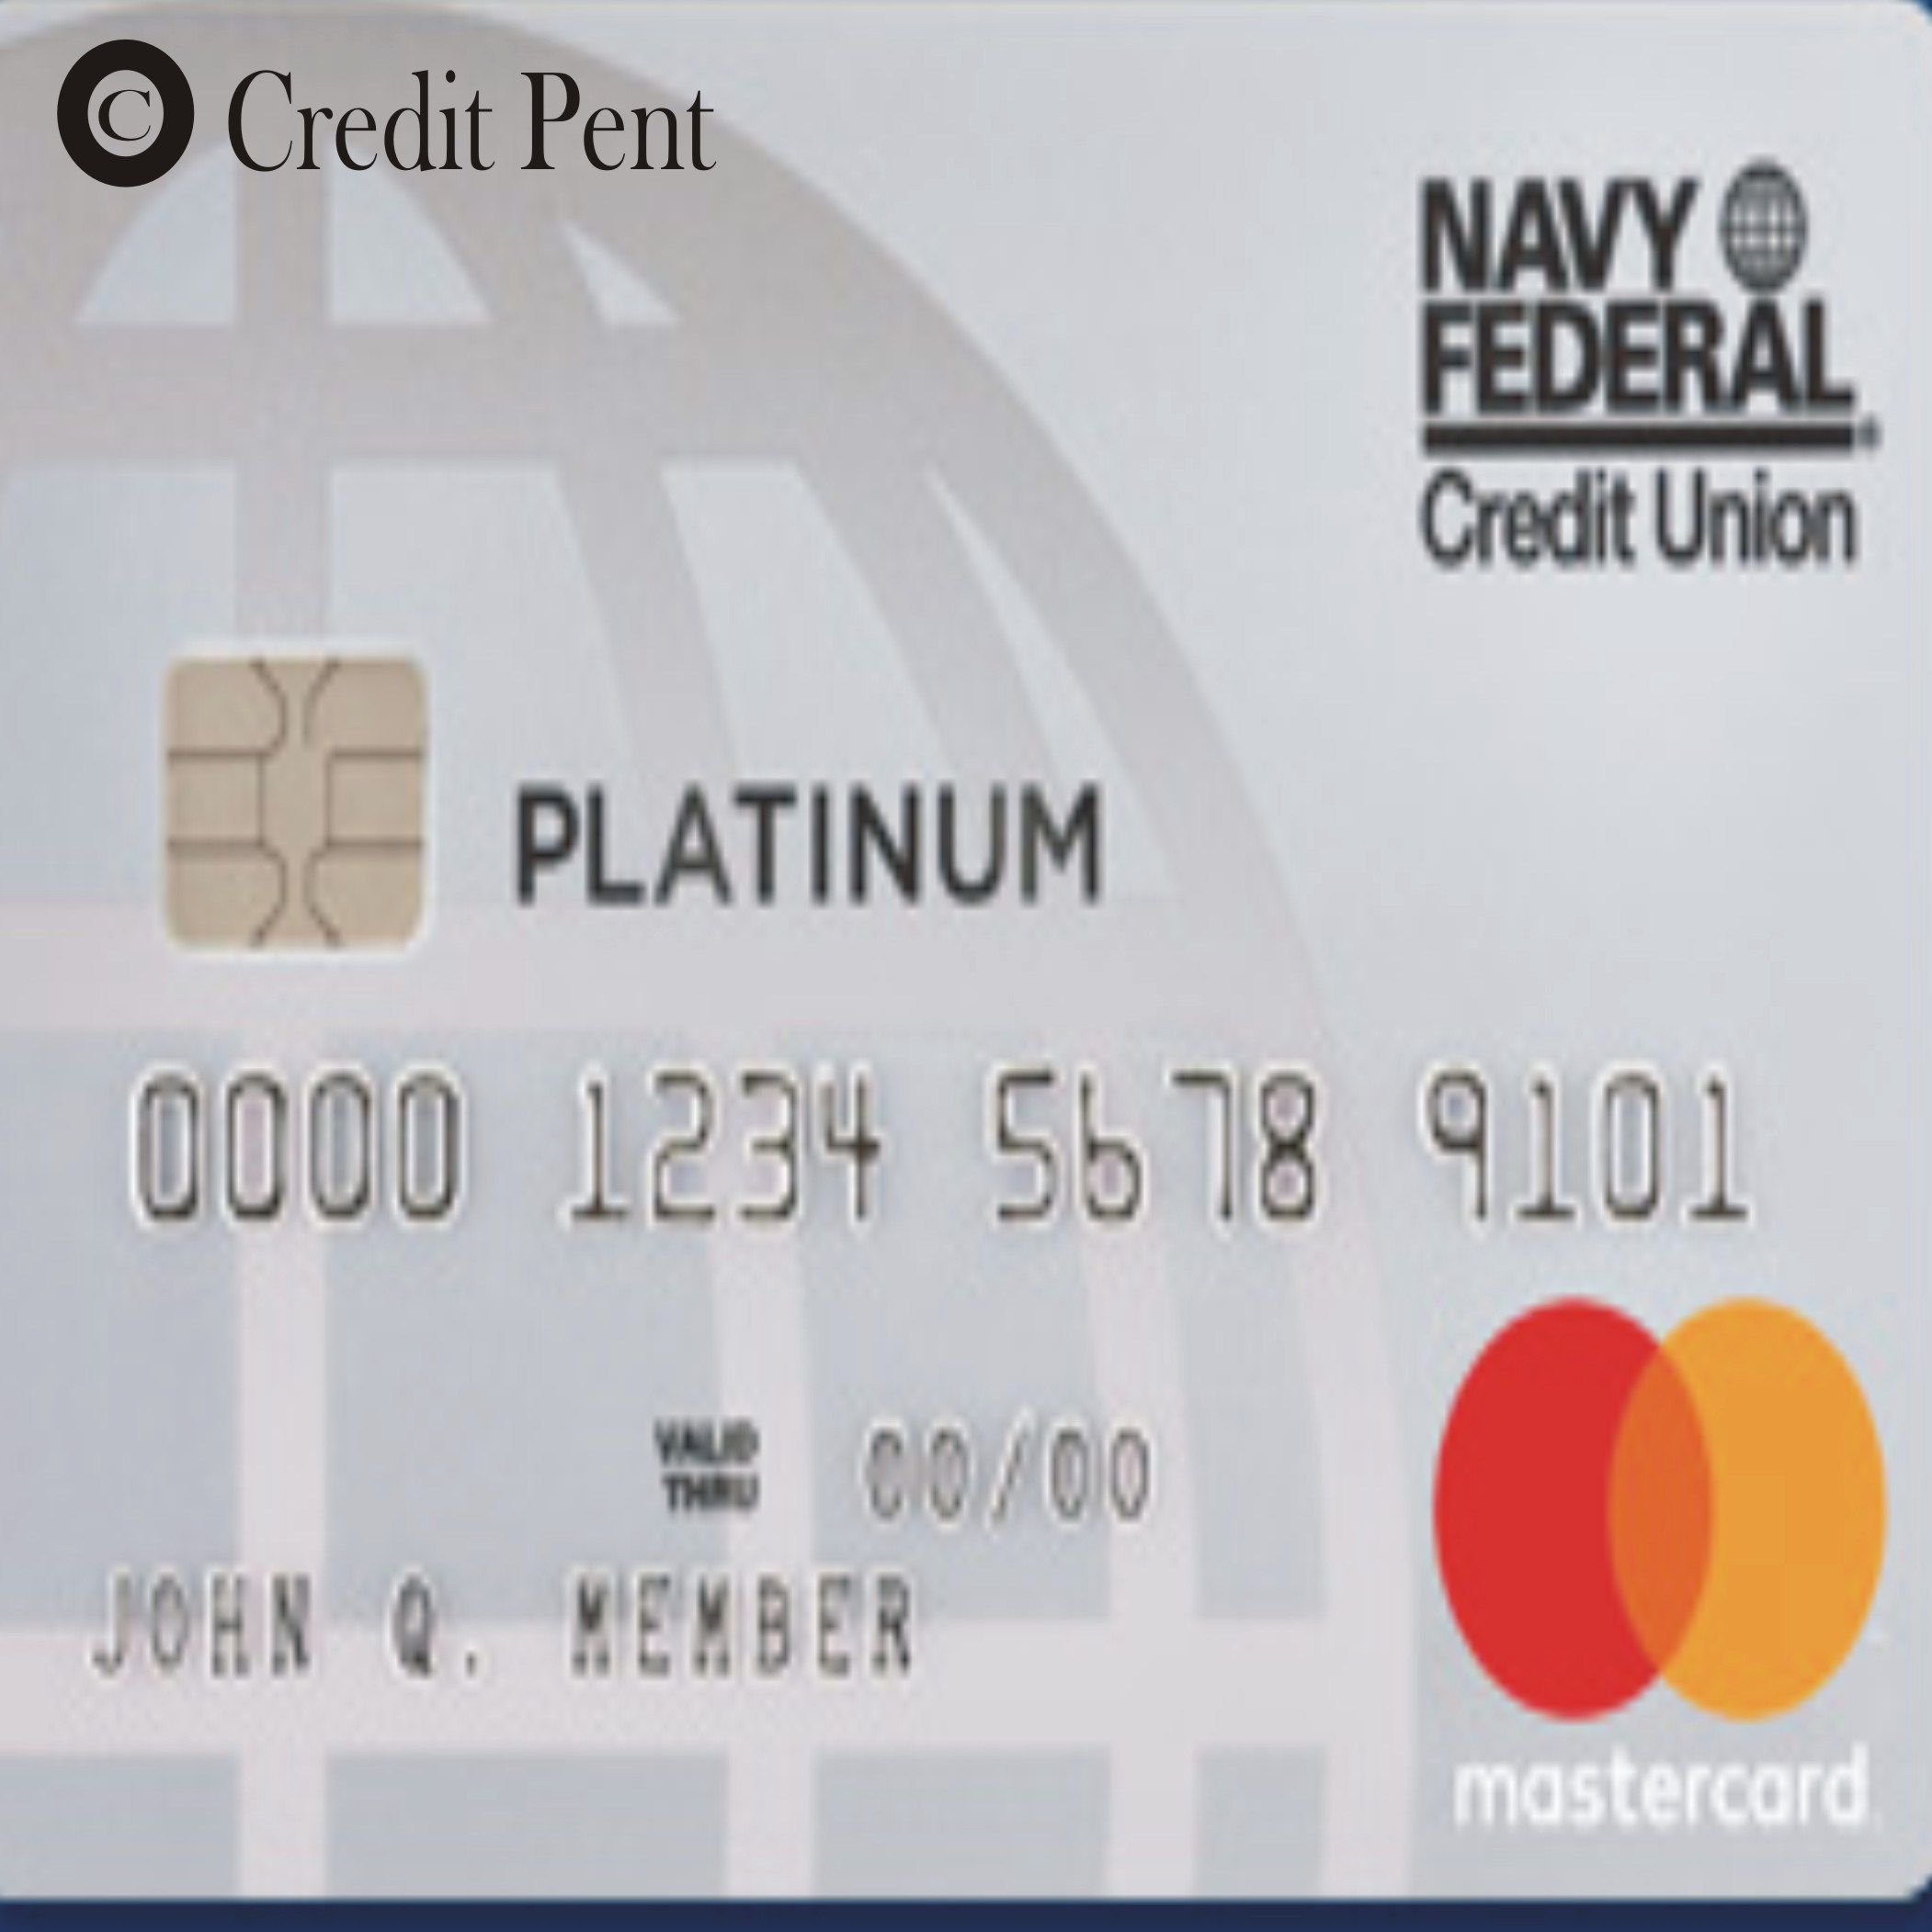 Navy Federal Credit Union Platinum Credit Card Payment Login Limit